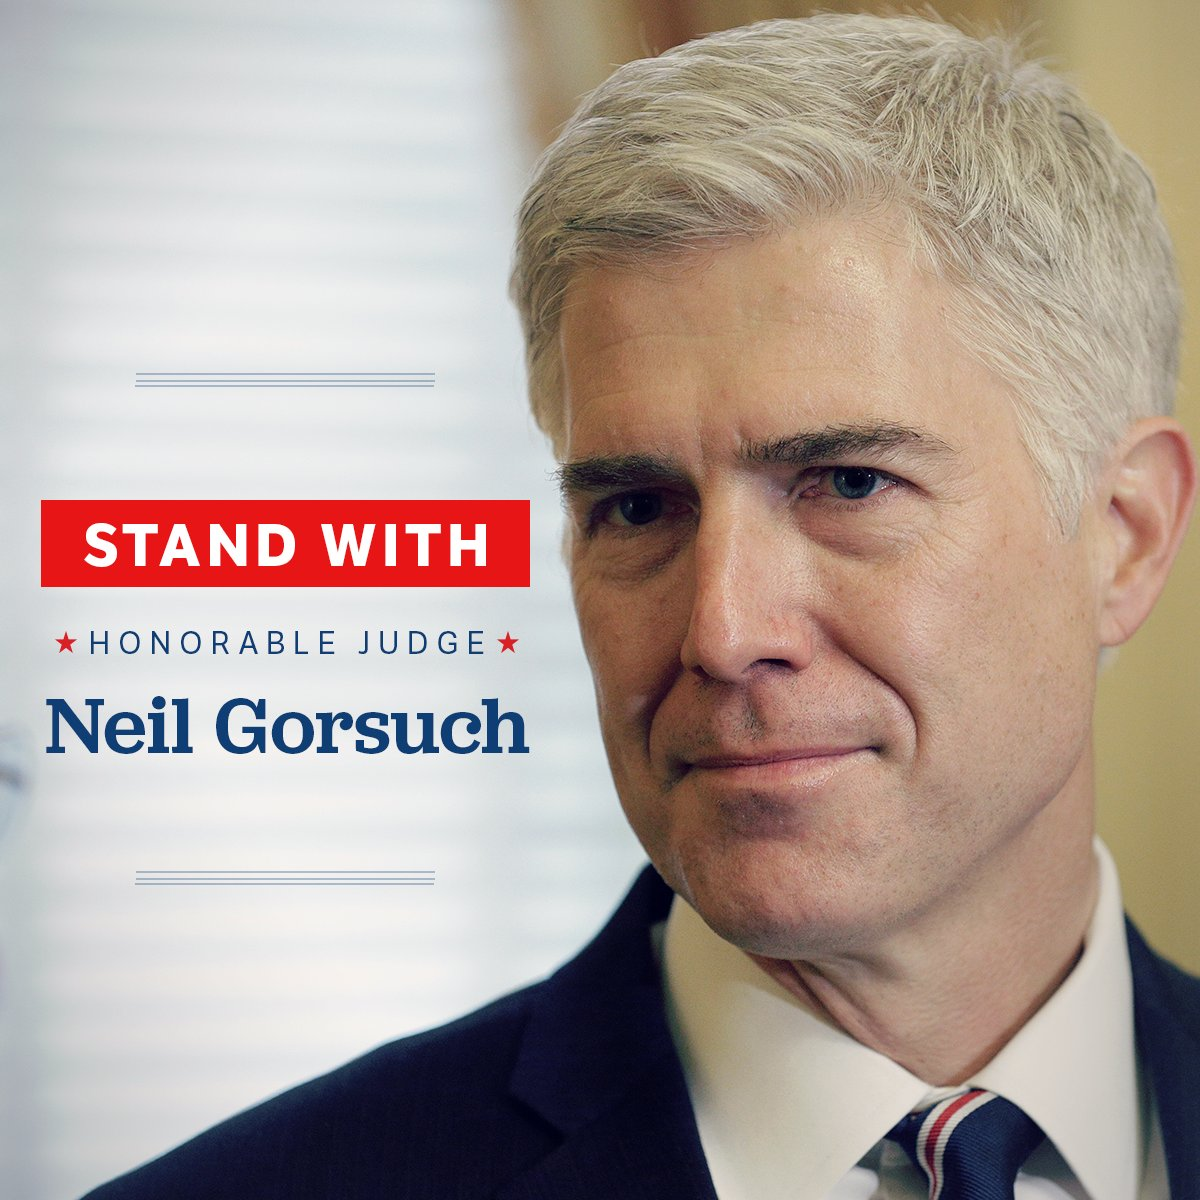 Tomorrow the hearing to #ConfirmGorsuch begins. RT to stand with Gorsuch for #SCOTUS! https://t.co/YvkW5XRvNi